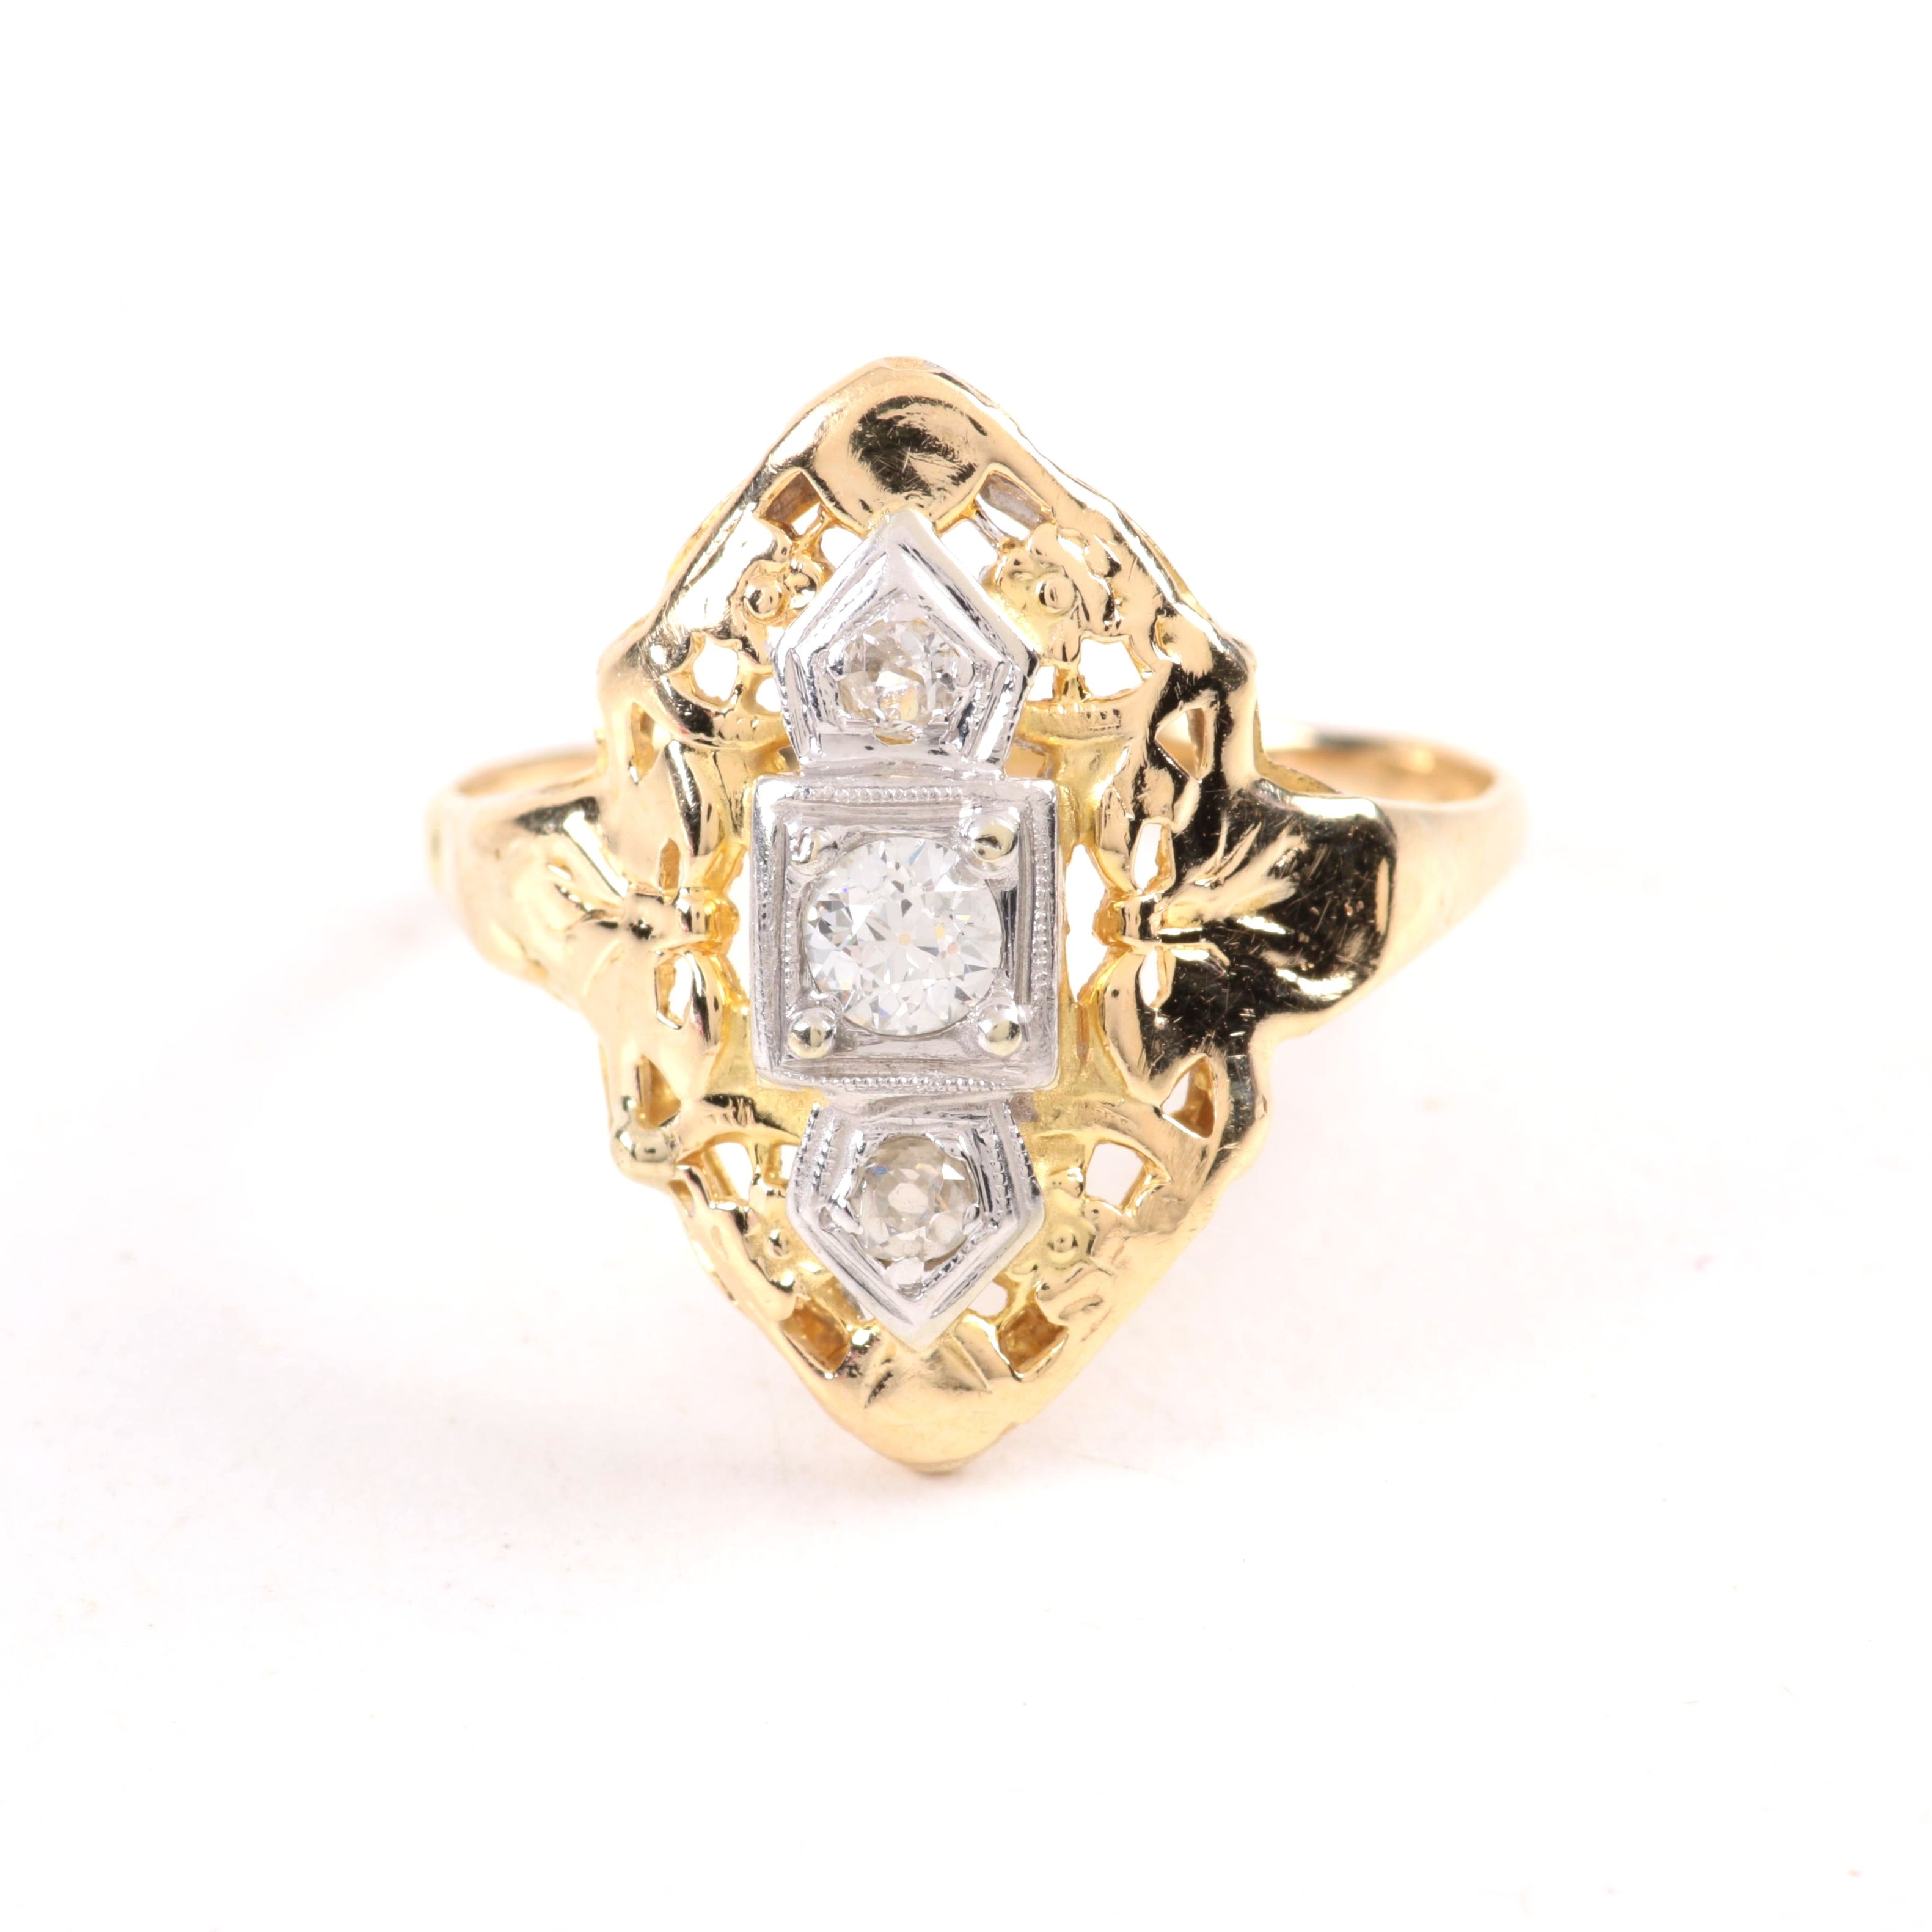 Antique 14K Yellow Gold Ring with Diamonds